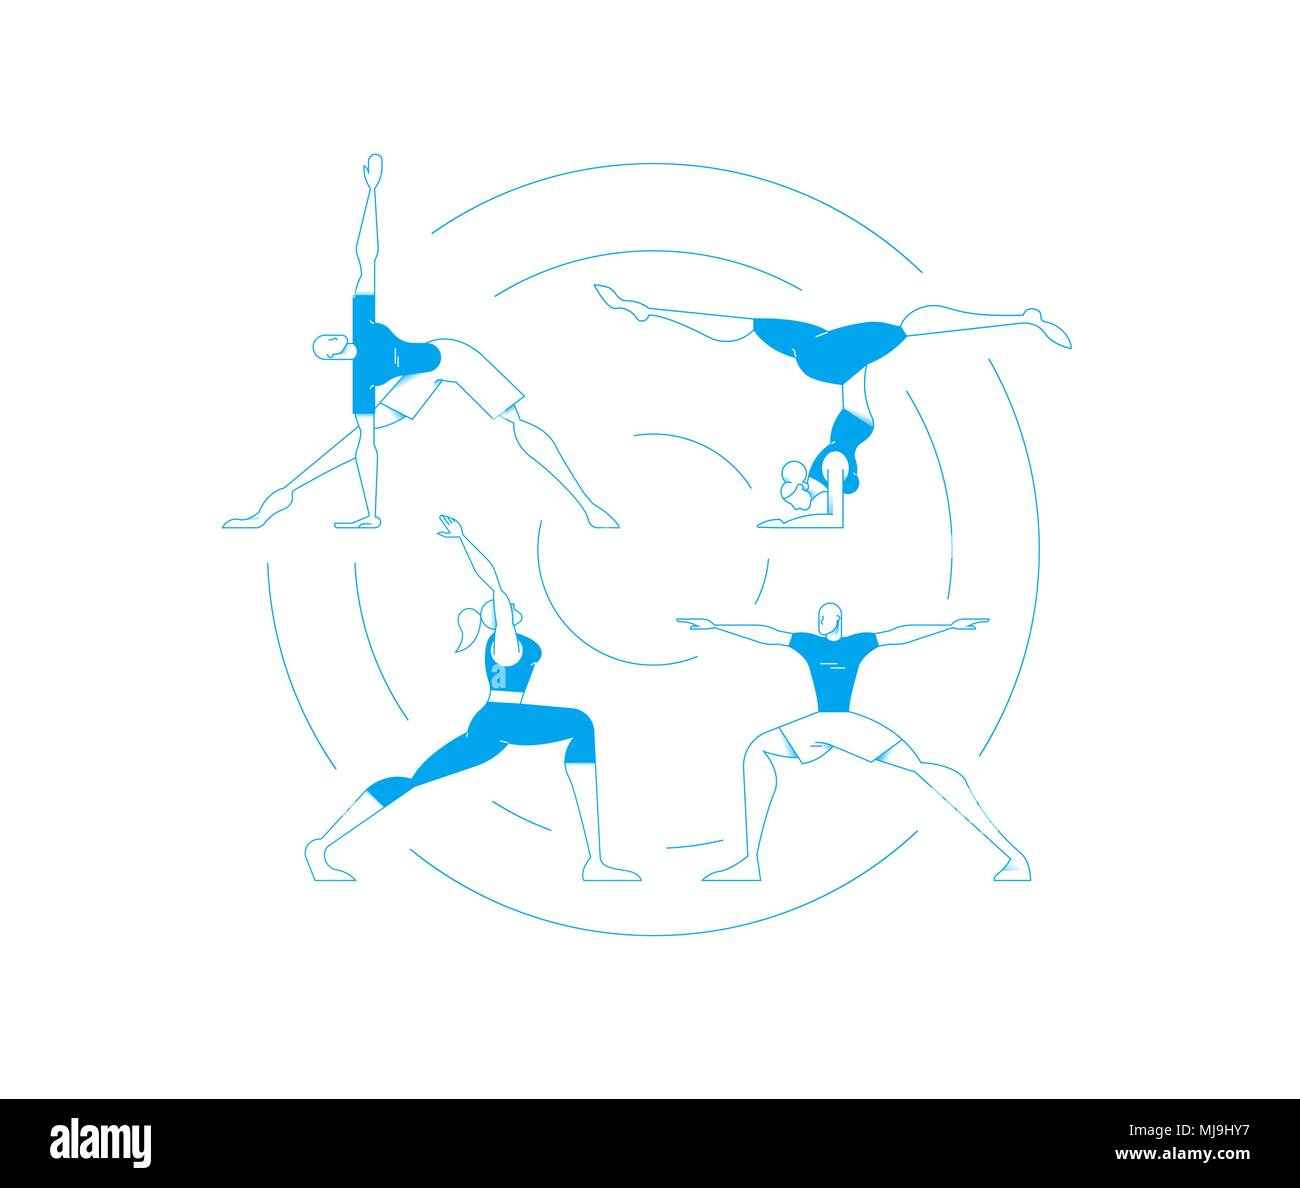 Set Of People Doing Yoga Poses Workout Women And Men Exercising In Modern Flat Outline Style EPS10 Vector